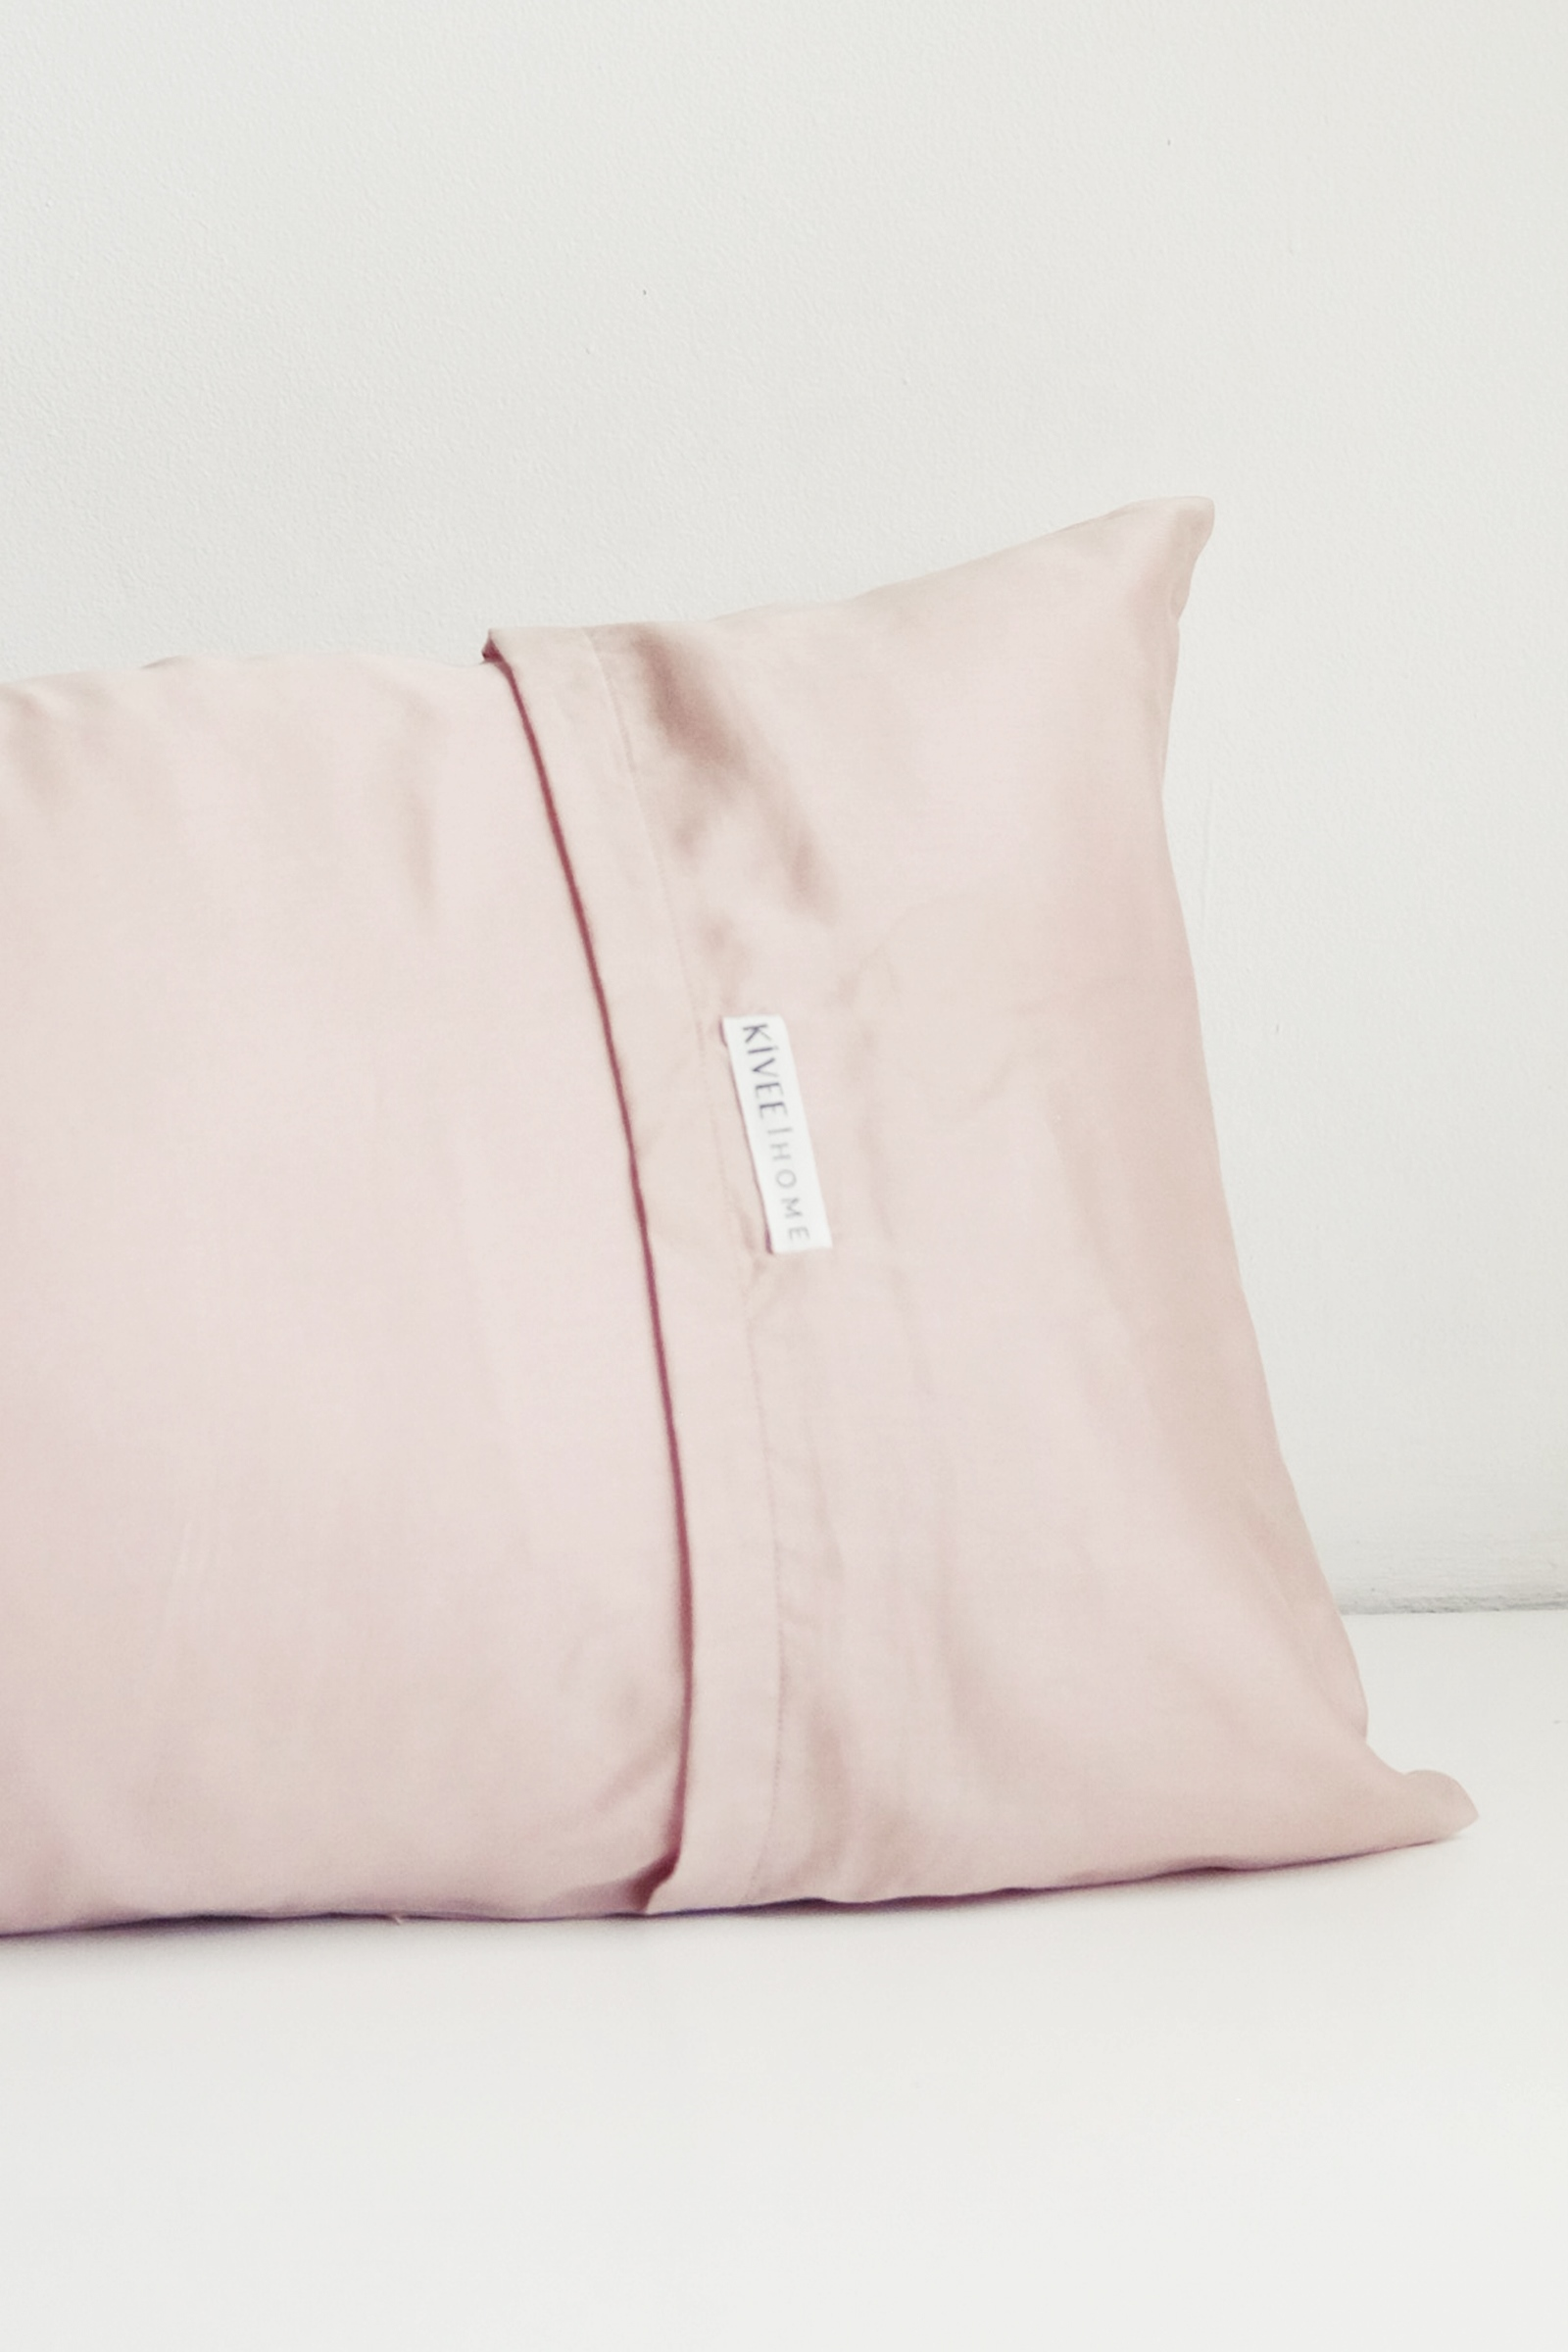 Picture of KIVEE X OSC SWEET DREAMS PILLOW BLUSH